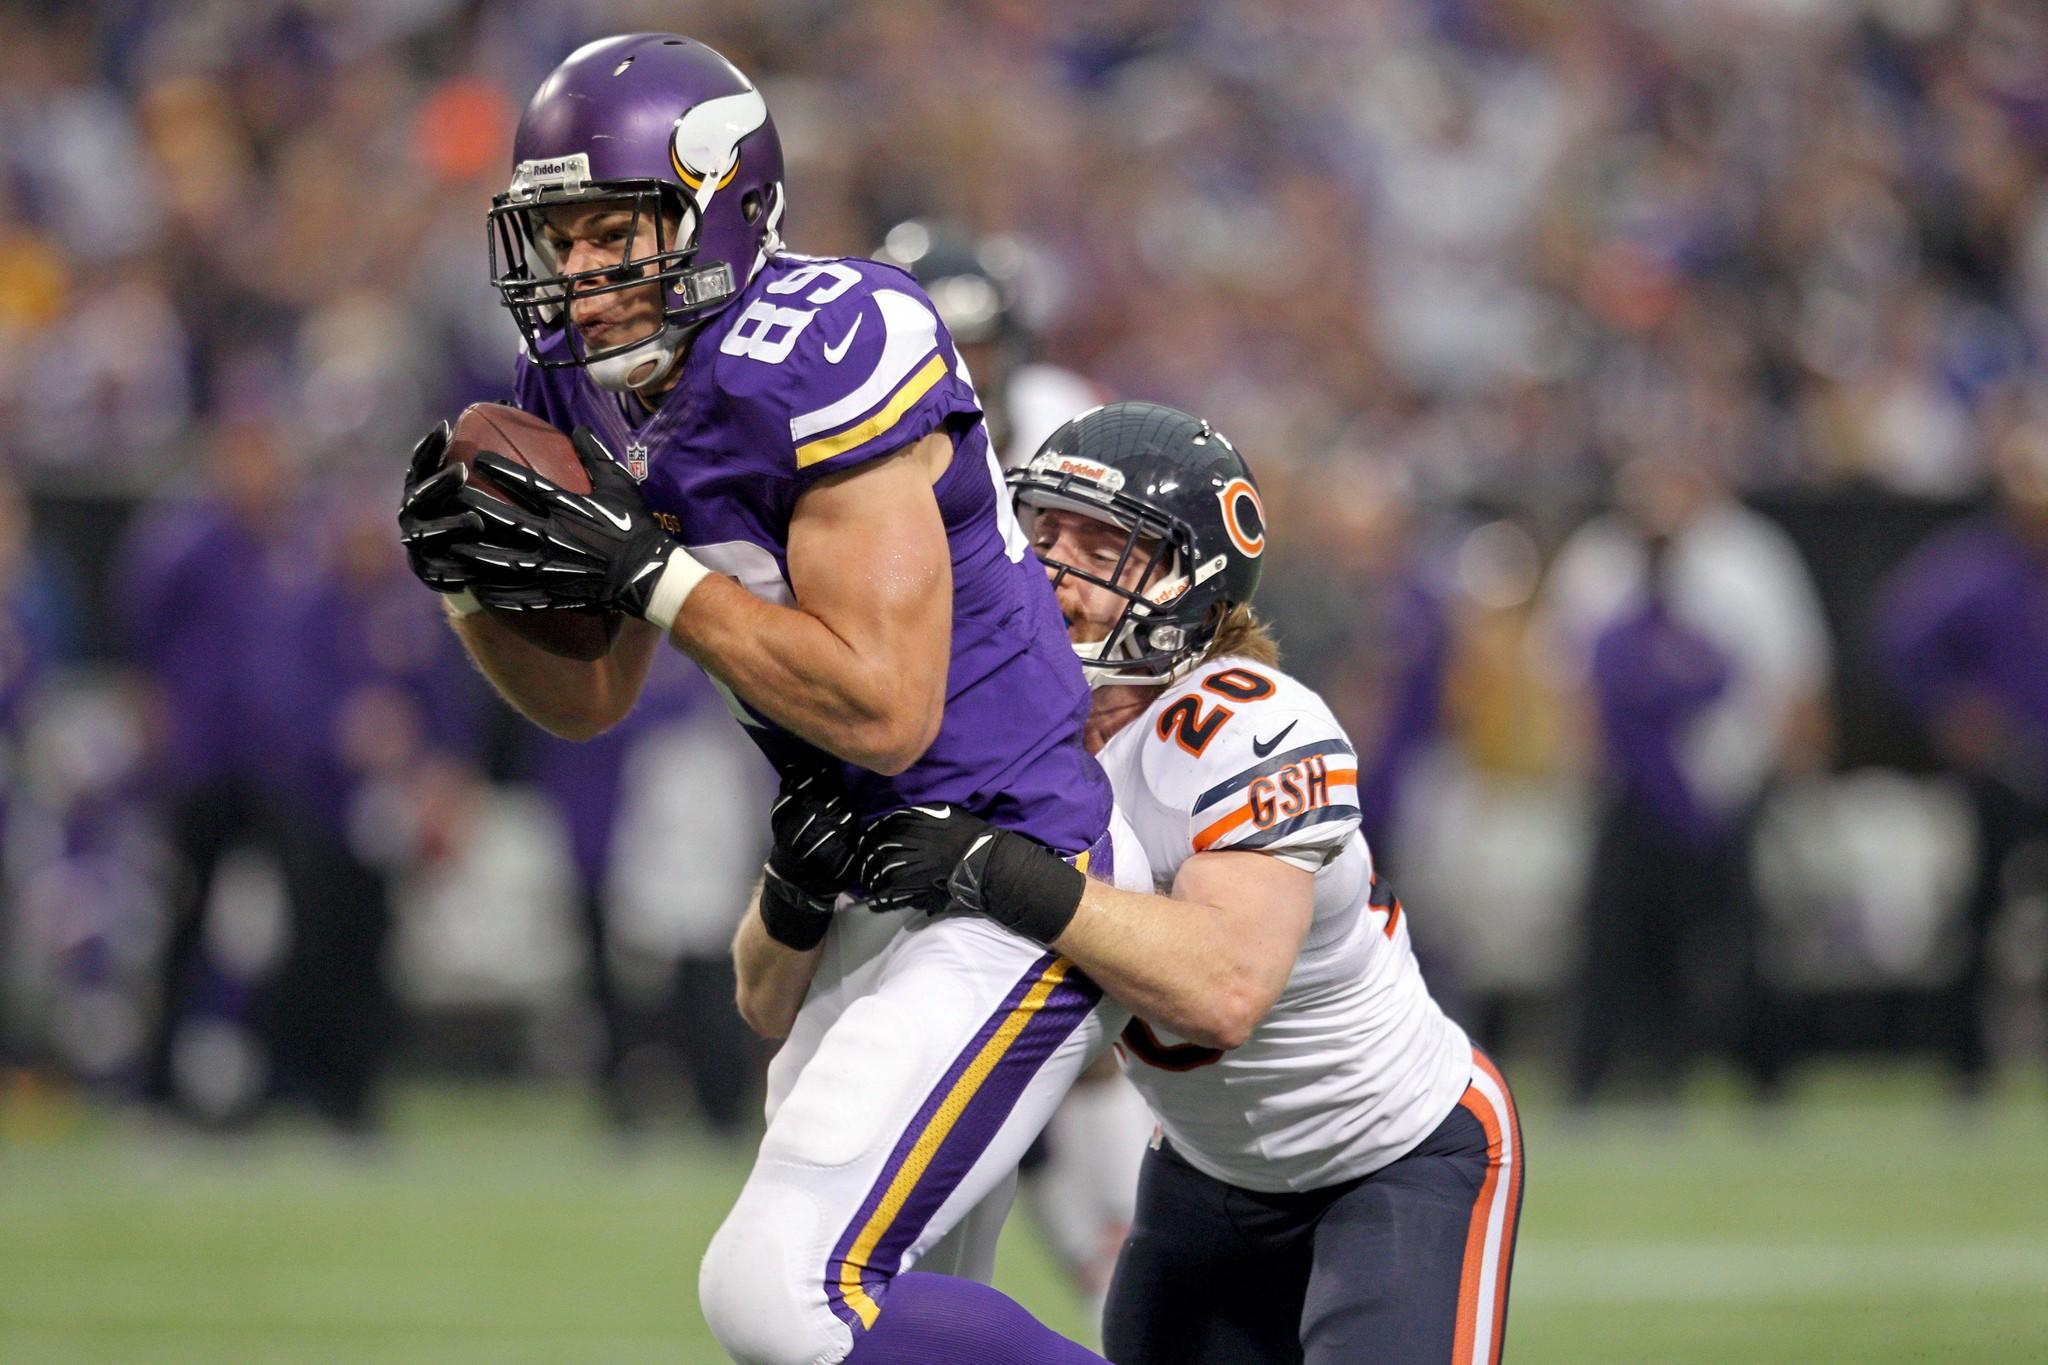 Vikings tight end John Carlson is tackled by Craig Steltz during the third quarter at Mall of America Field at H.H.H. Metrodome.